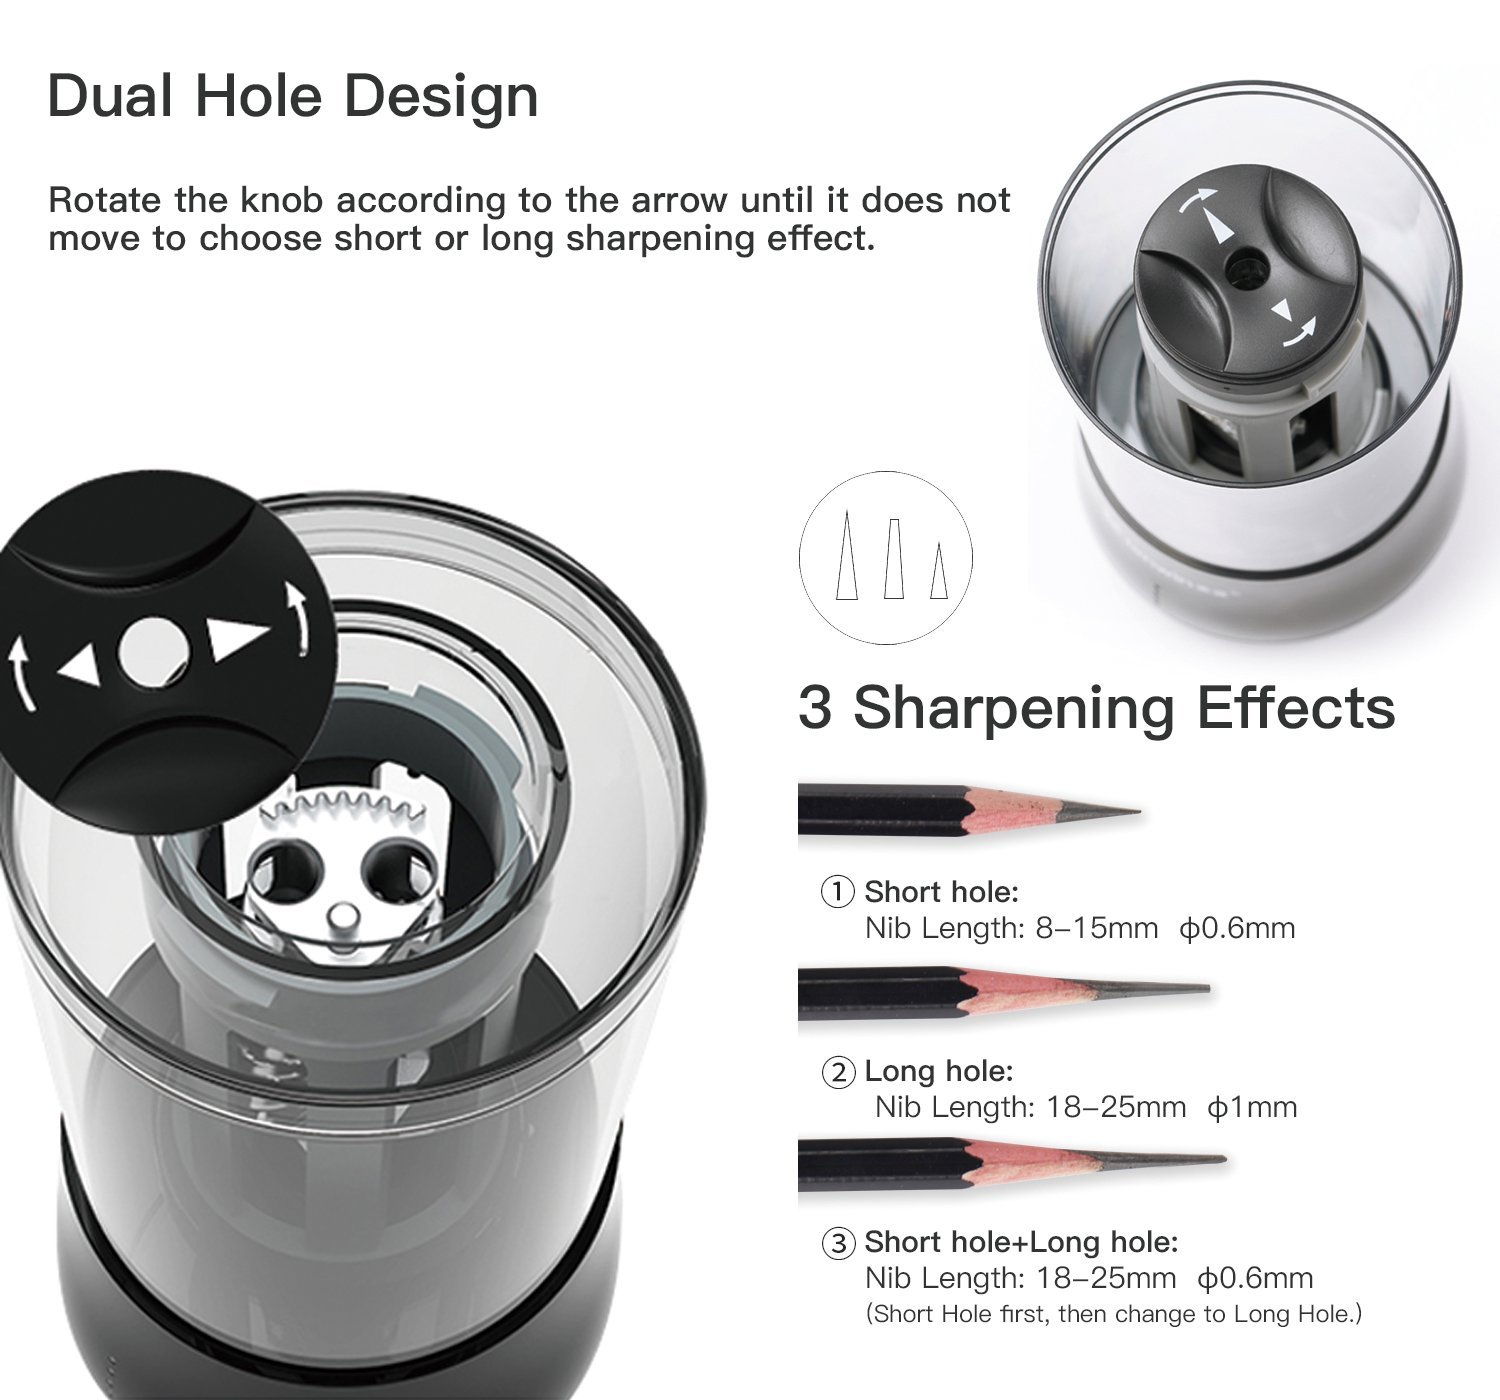 Automatic Pencil Sharpener Portable 4 Free AA Batteries Pencil Sharpener Electric Art Pencil Sharpener Battery Powered White No 2 /& Drawing Pencils Electronic Colored Pencil Sharpeners for Kids